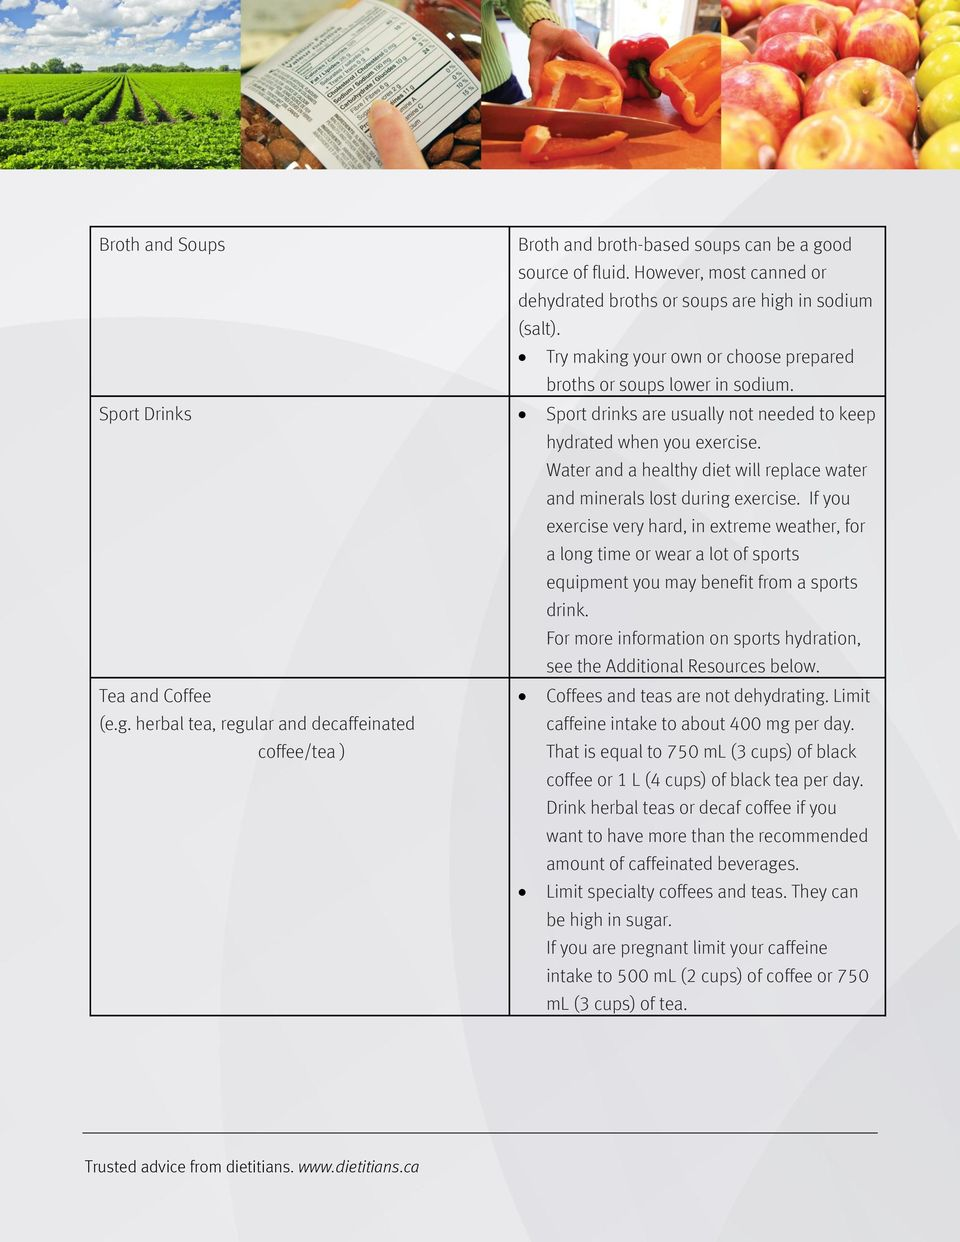 Water and a healthy diet will replace water and minerals lost during exercise.